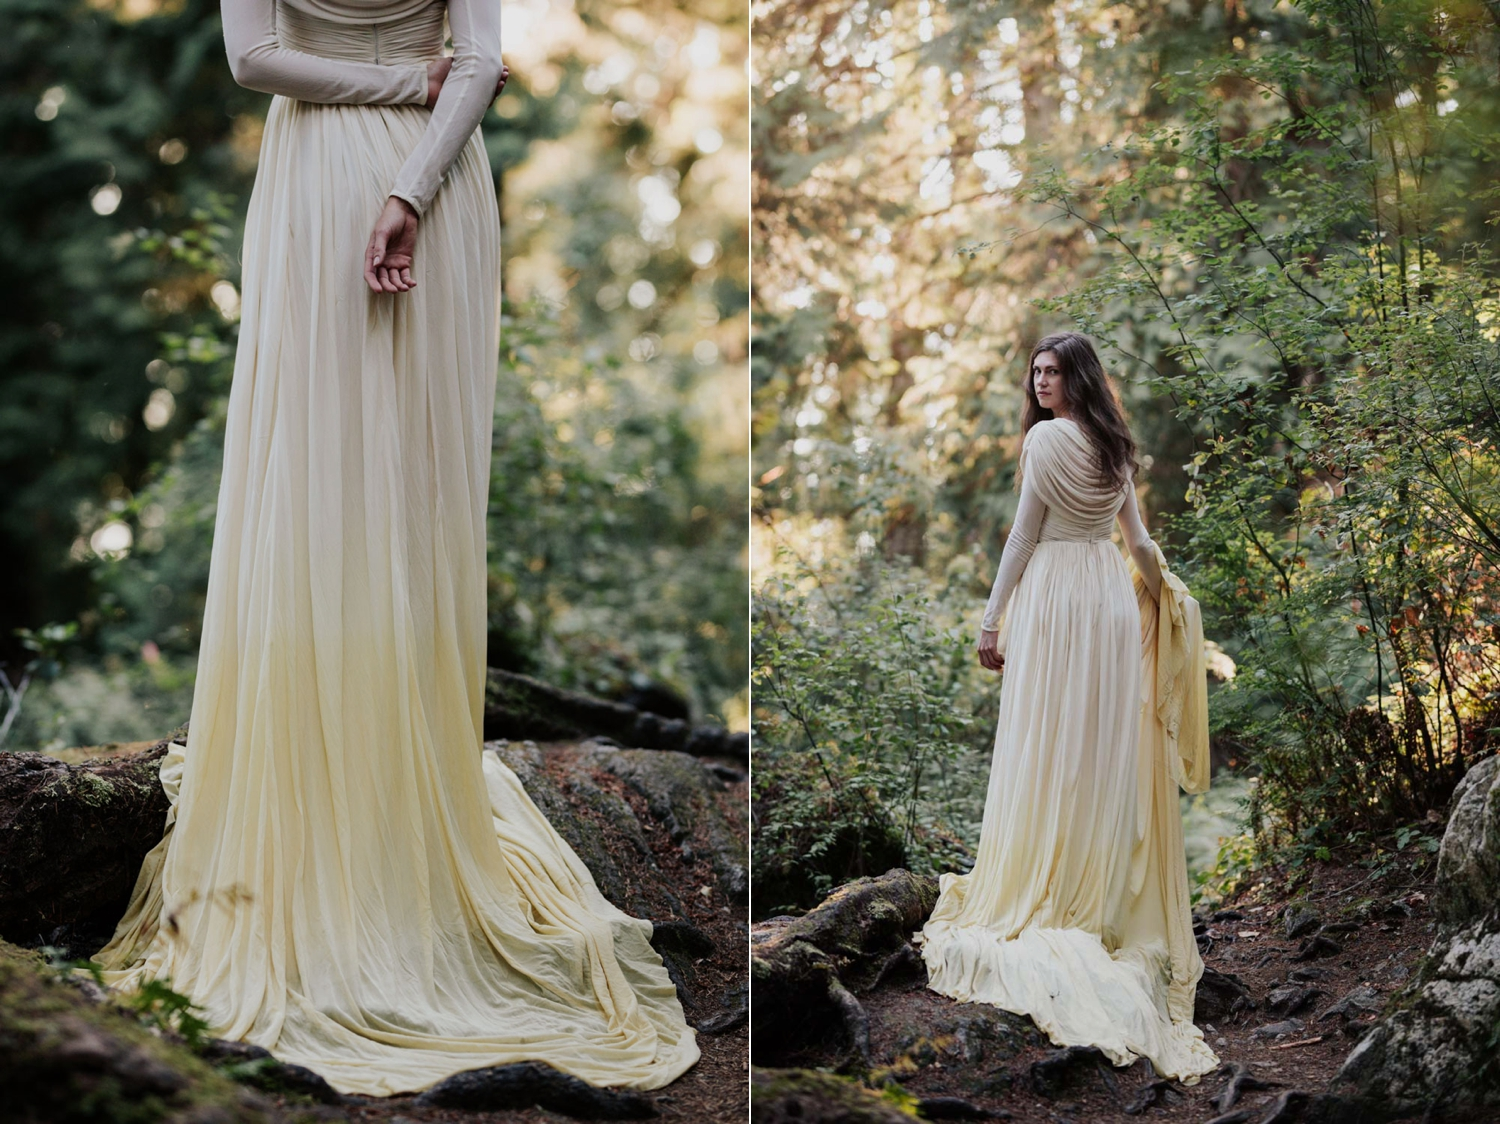 Sunlight Shines Through Forest Onto Boho Vancouver Island Bride Wearing Long Sleeve Dress